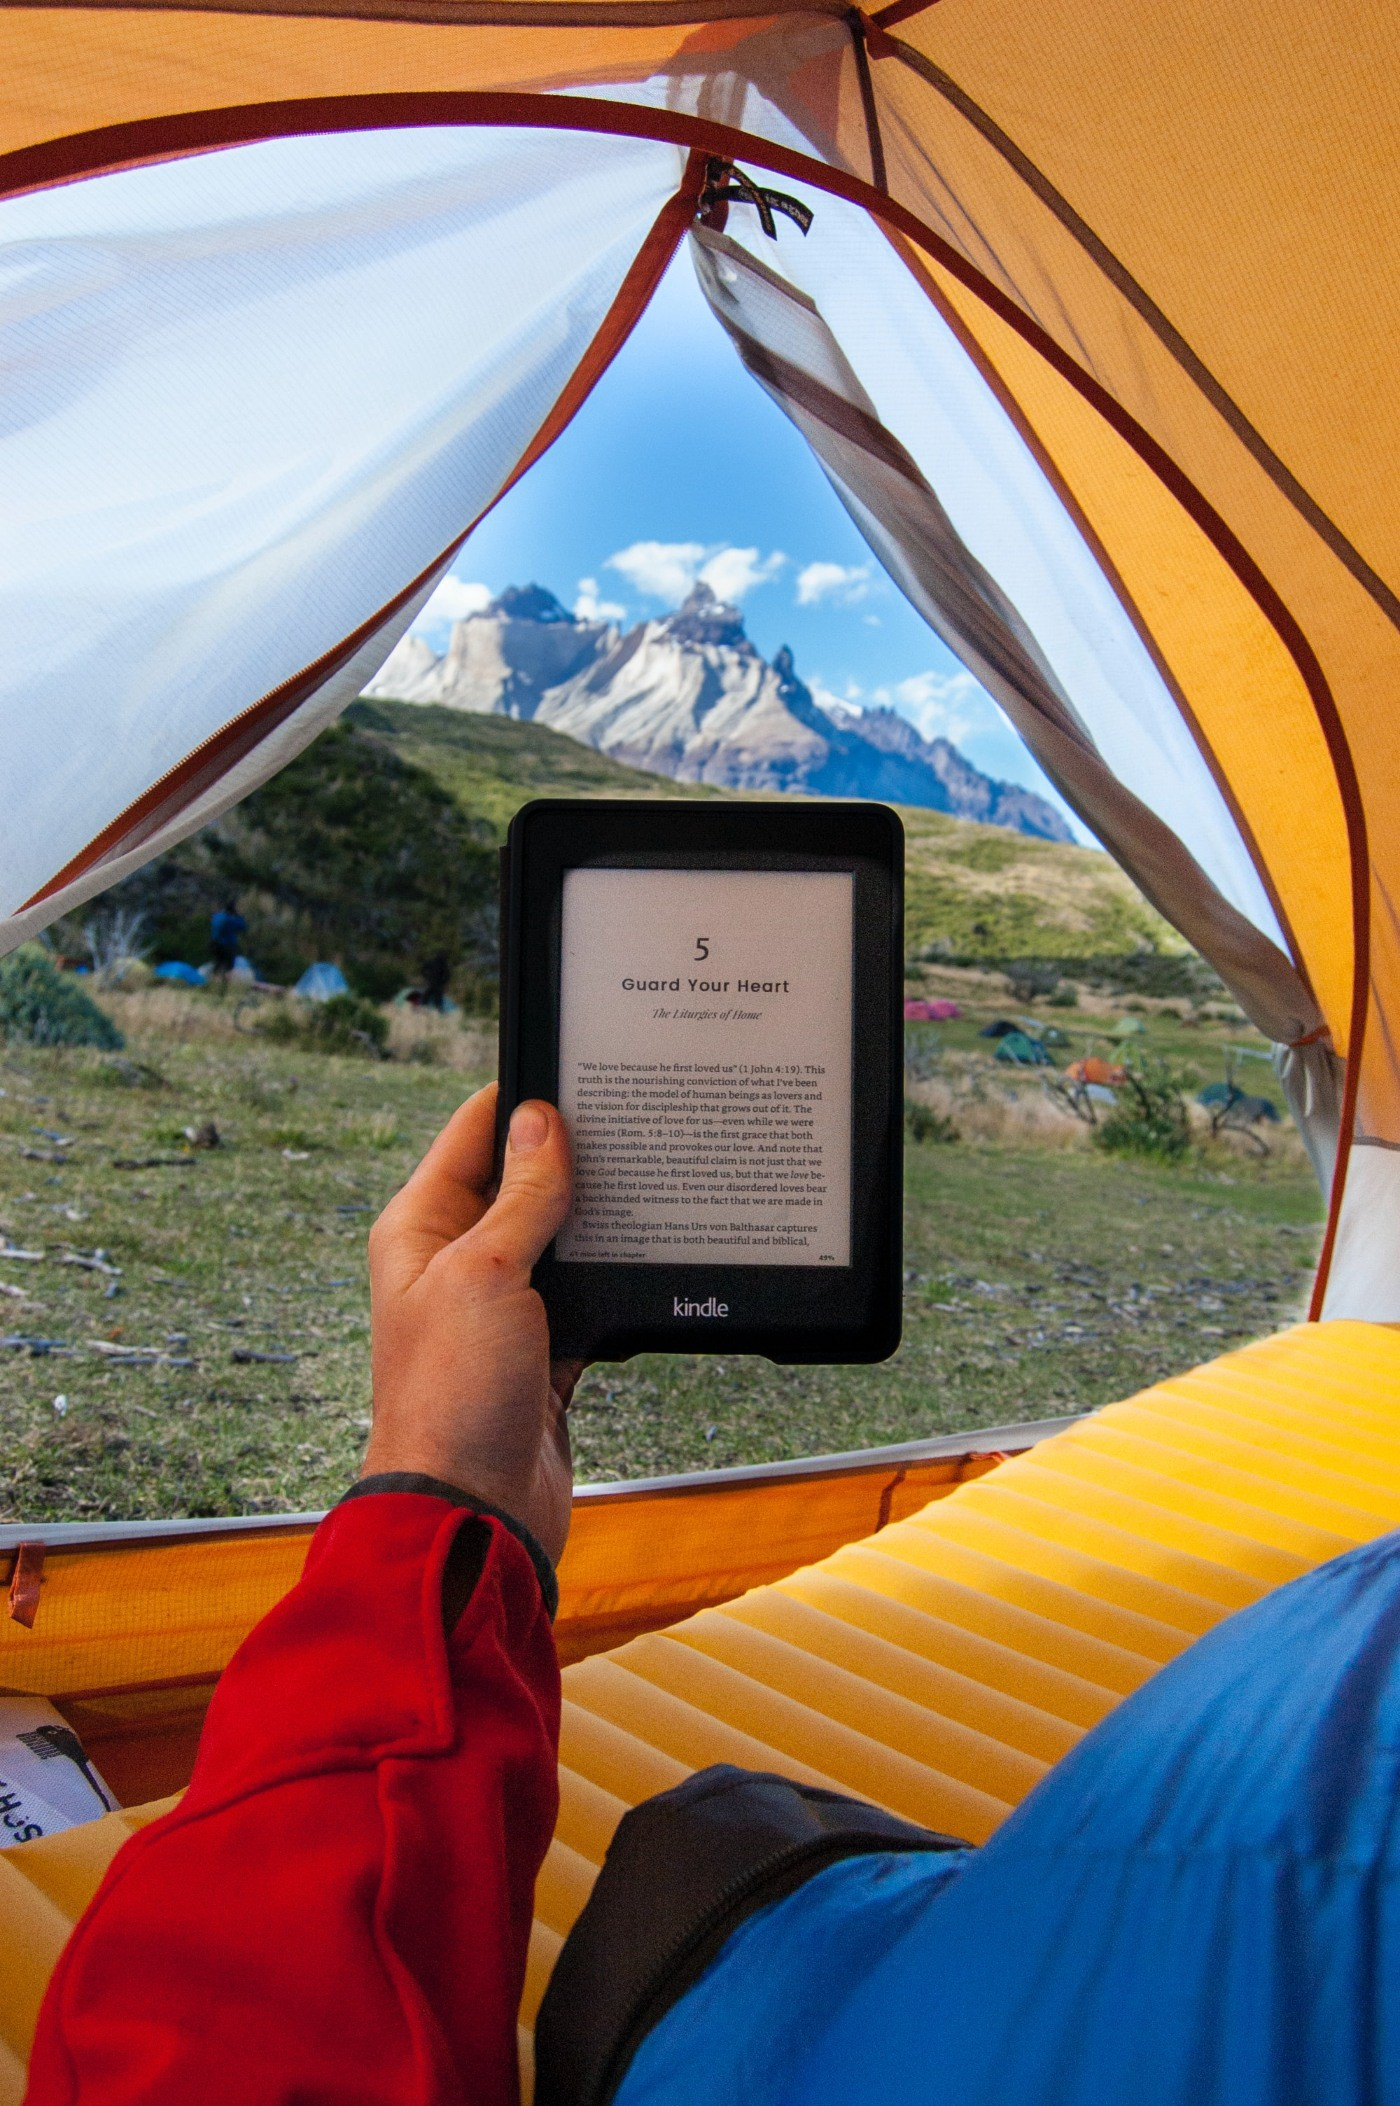 Male hand, holding Kindle device, inside brightly colored tent, looking at tall mountain in the background